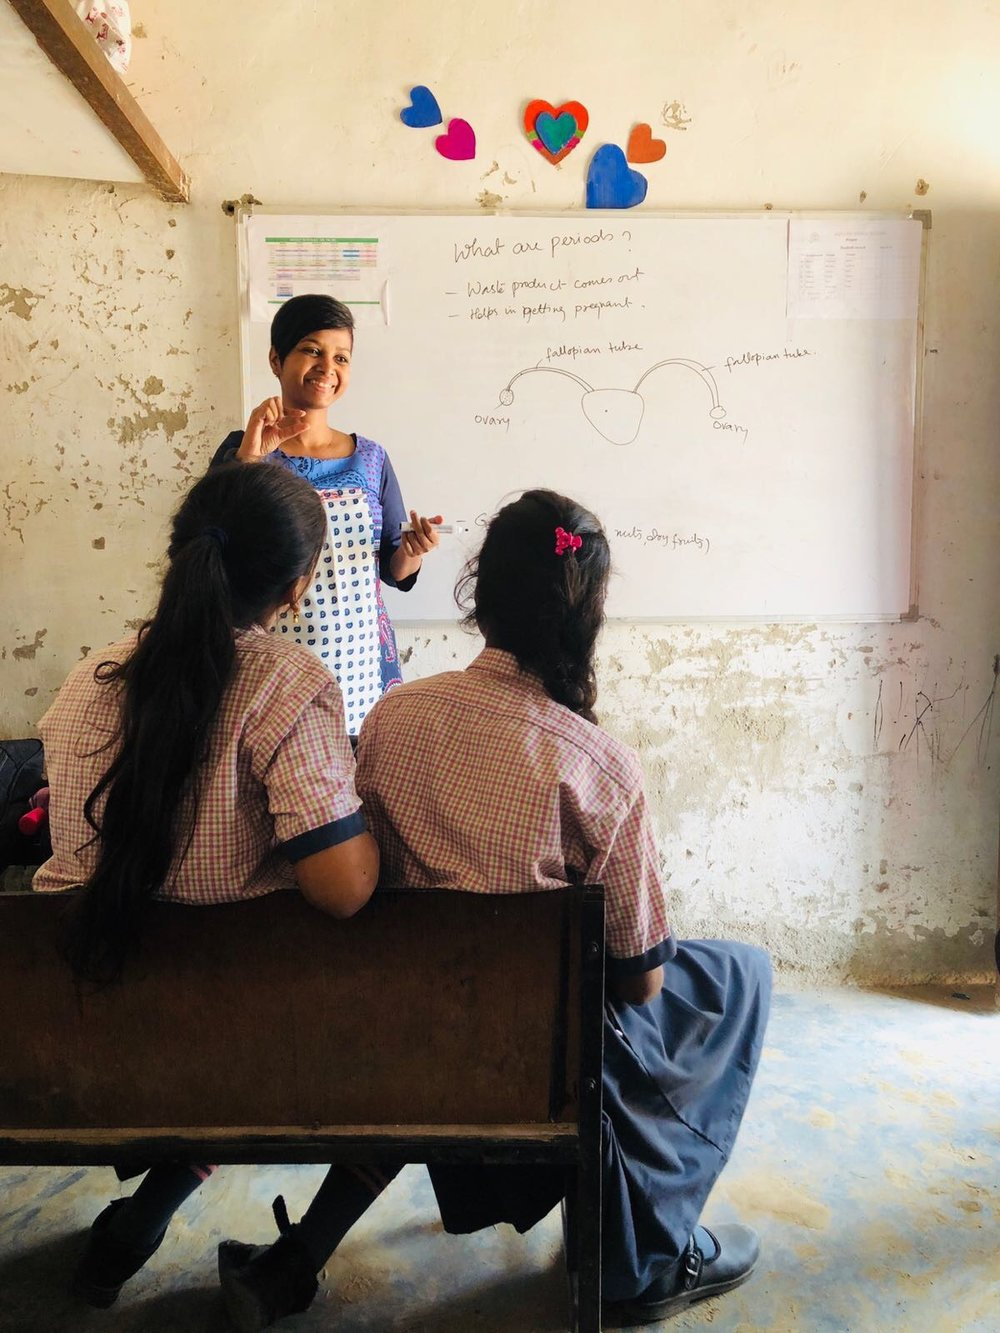 Sneha Purti is loved and respected by the young ladies in her classes; she has empowered them by giving them the gift of understanding. They are no longer afraid or confused by what is happening in their own bodies, but can appreciate the way they have been fearfully and wonderfully made!